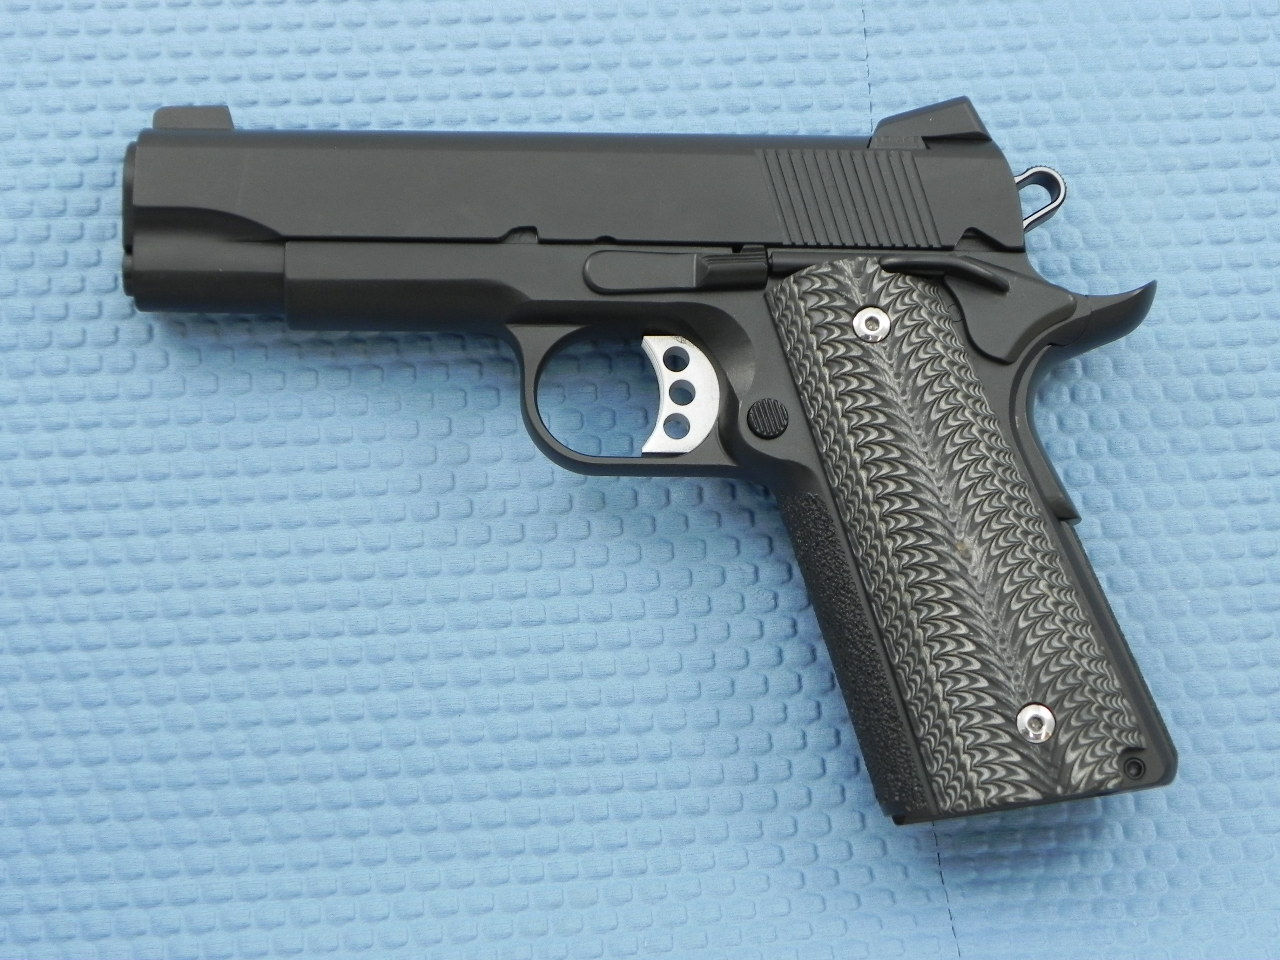 0042 - Cylinder and Slide 1lb 9 oz!! 1911 Lightweight Commander in 9mm